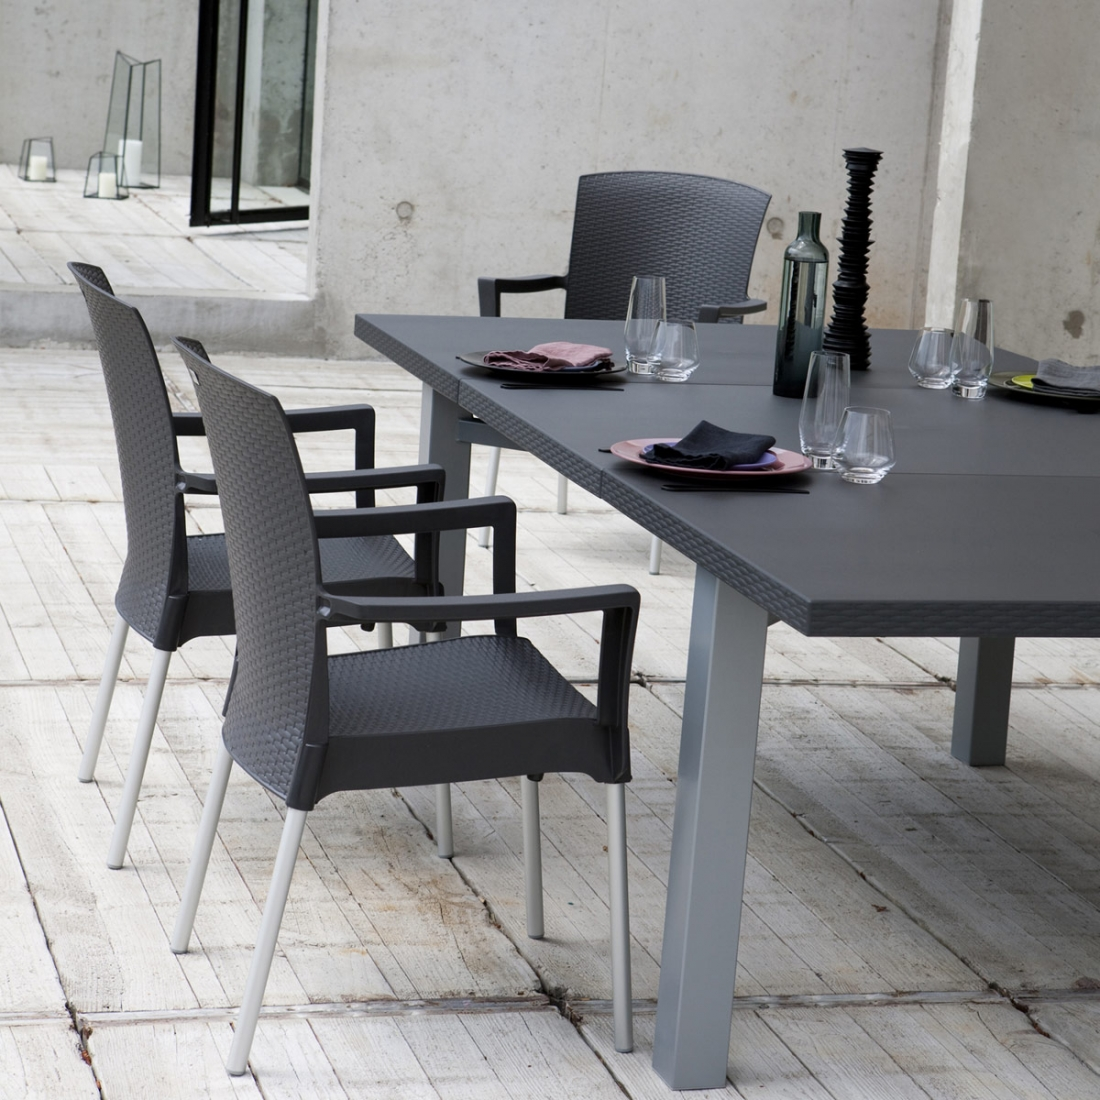 Salon de jardin de repas ineo design grosfillex for Jardin design